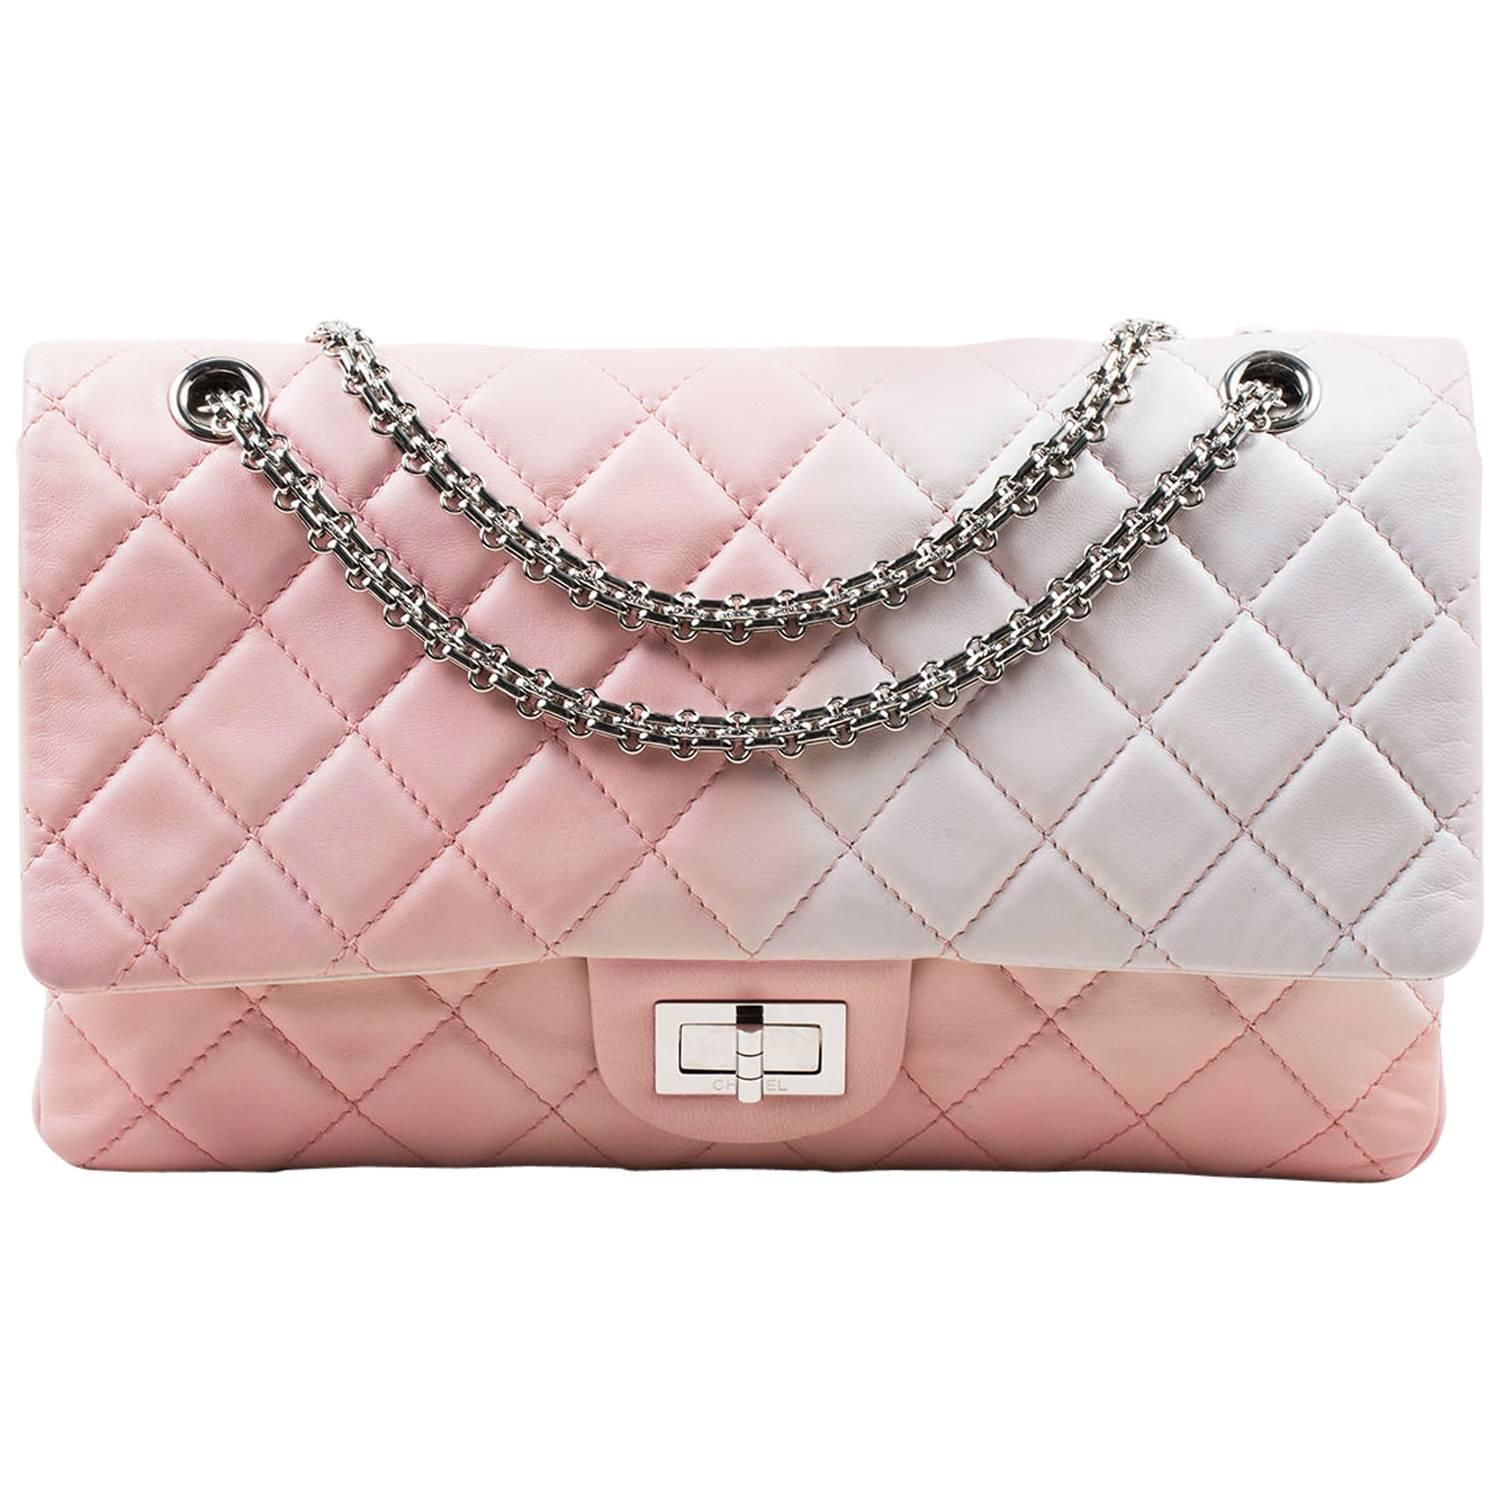 e5f68b342 Chanel Pink White Leather Ombre Degradé